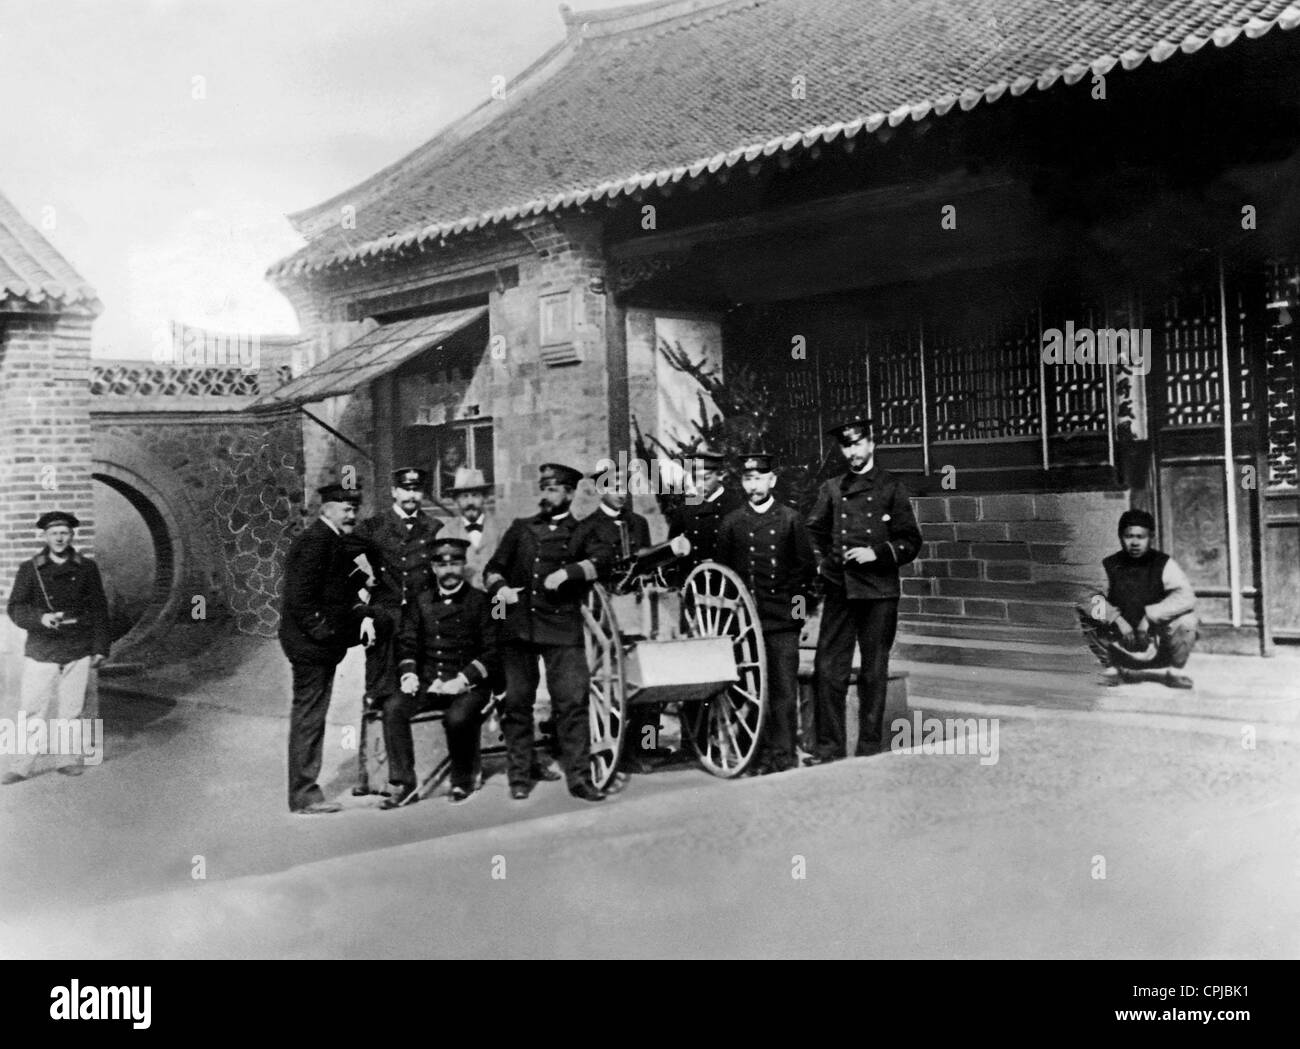 Sea captain Zeye with his officers and interpreters, 1897 - Stock Image